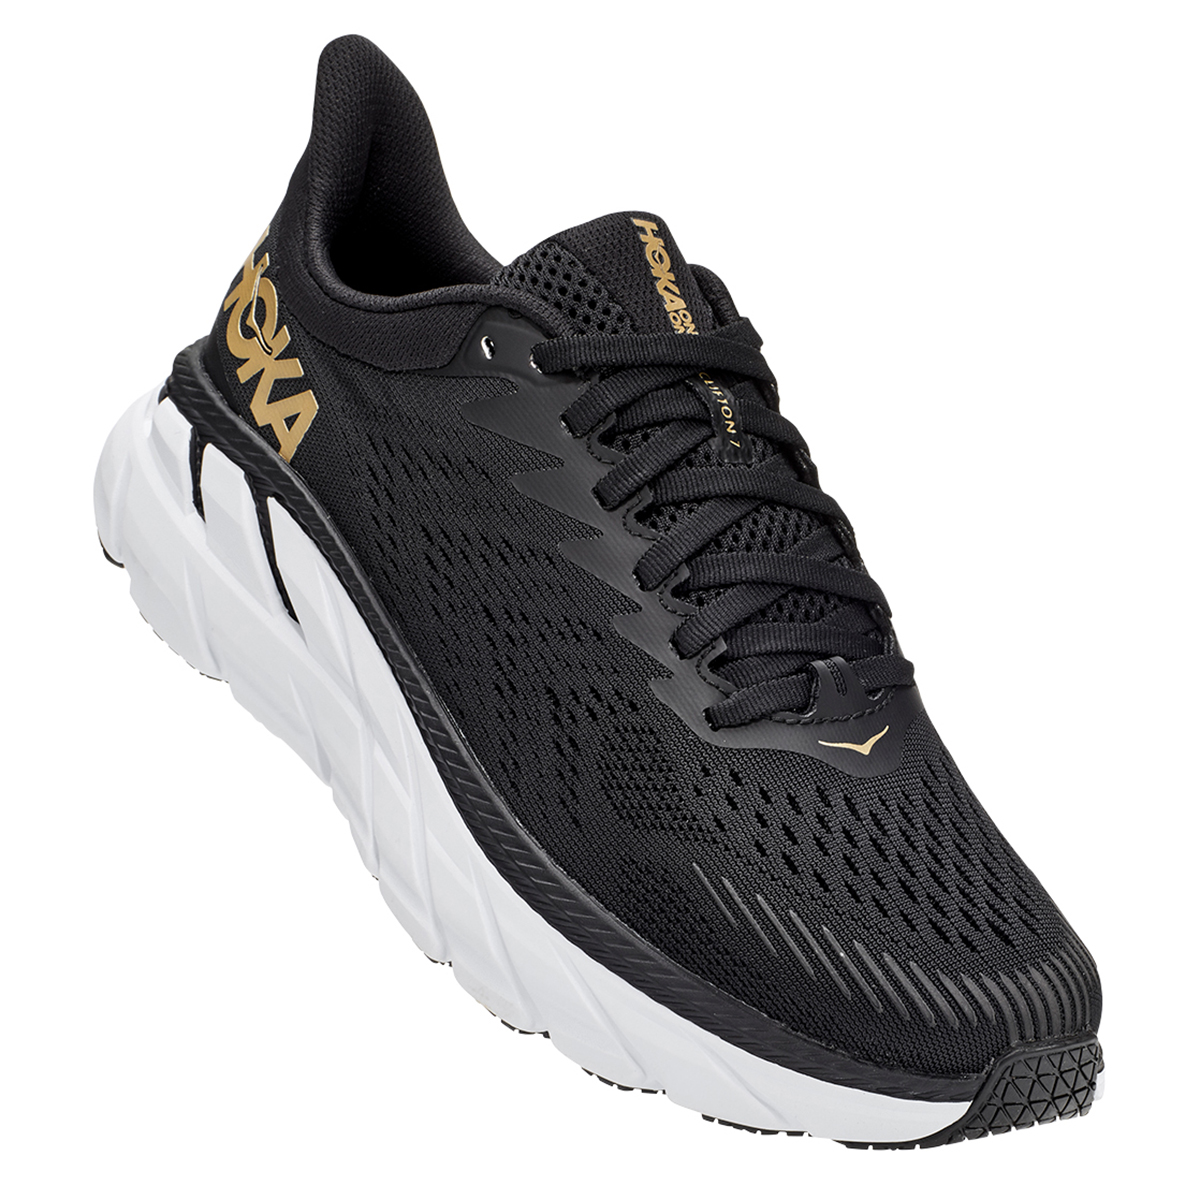 Women's Hoka One One Clifton 7 Running Shoe - Color: Black/Bronze - Size: 5 - Width: Regular, Black/Bronze, large, image 4